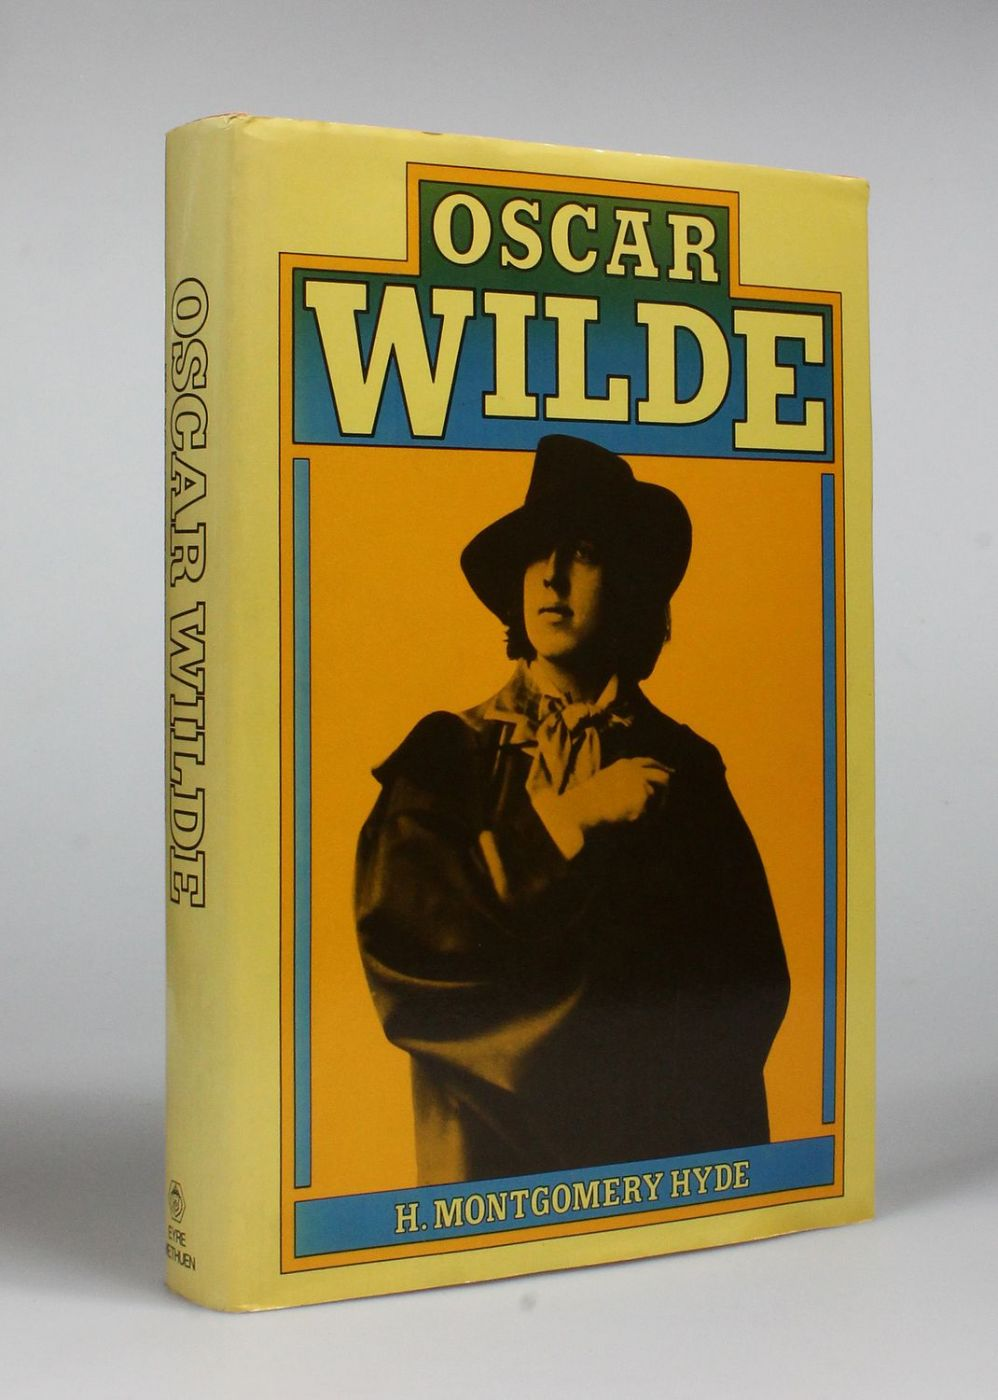 a biography of oscar wilde In this biography, wilde the legendary victorian--brilliant writer and conversationalist, reckless flouter of social and sexual conventions--is brought to life more.